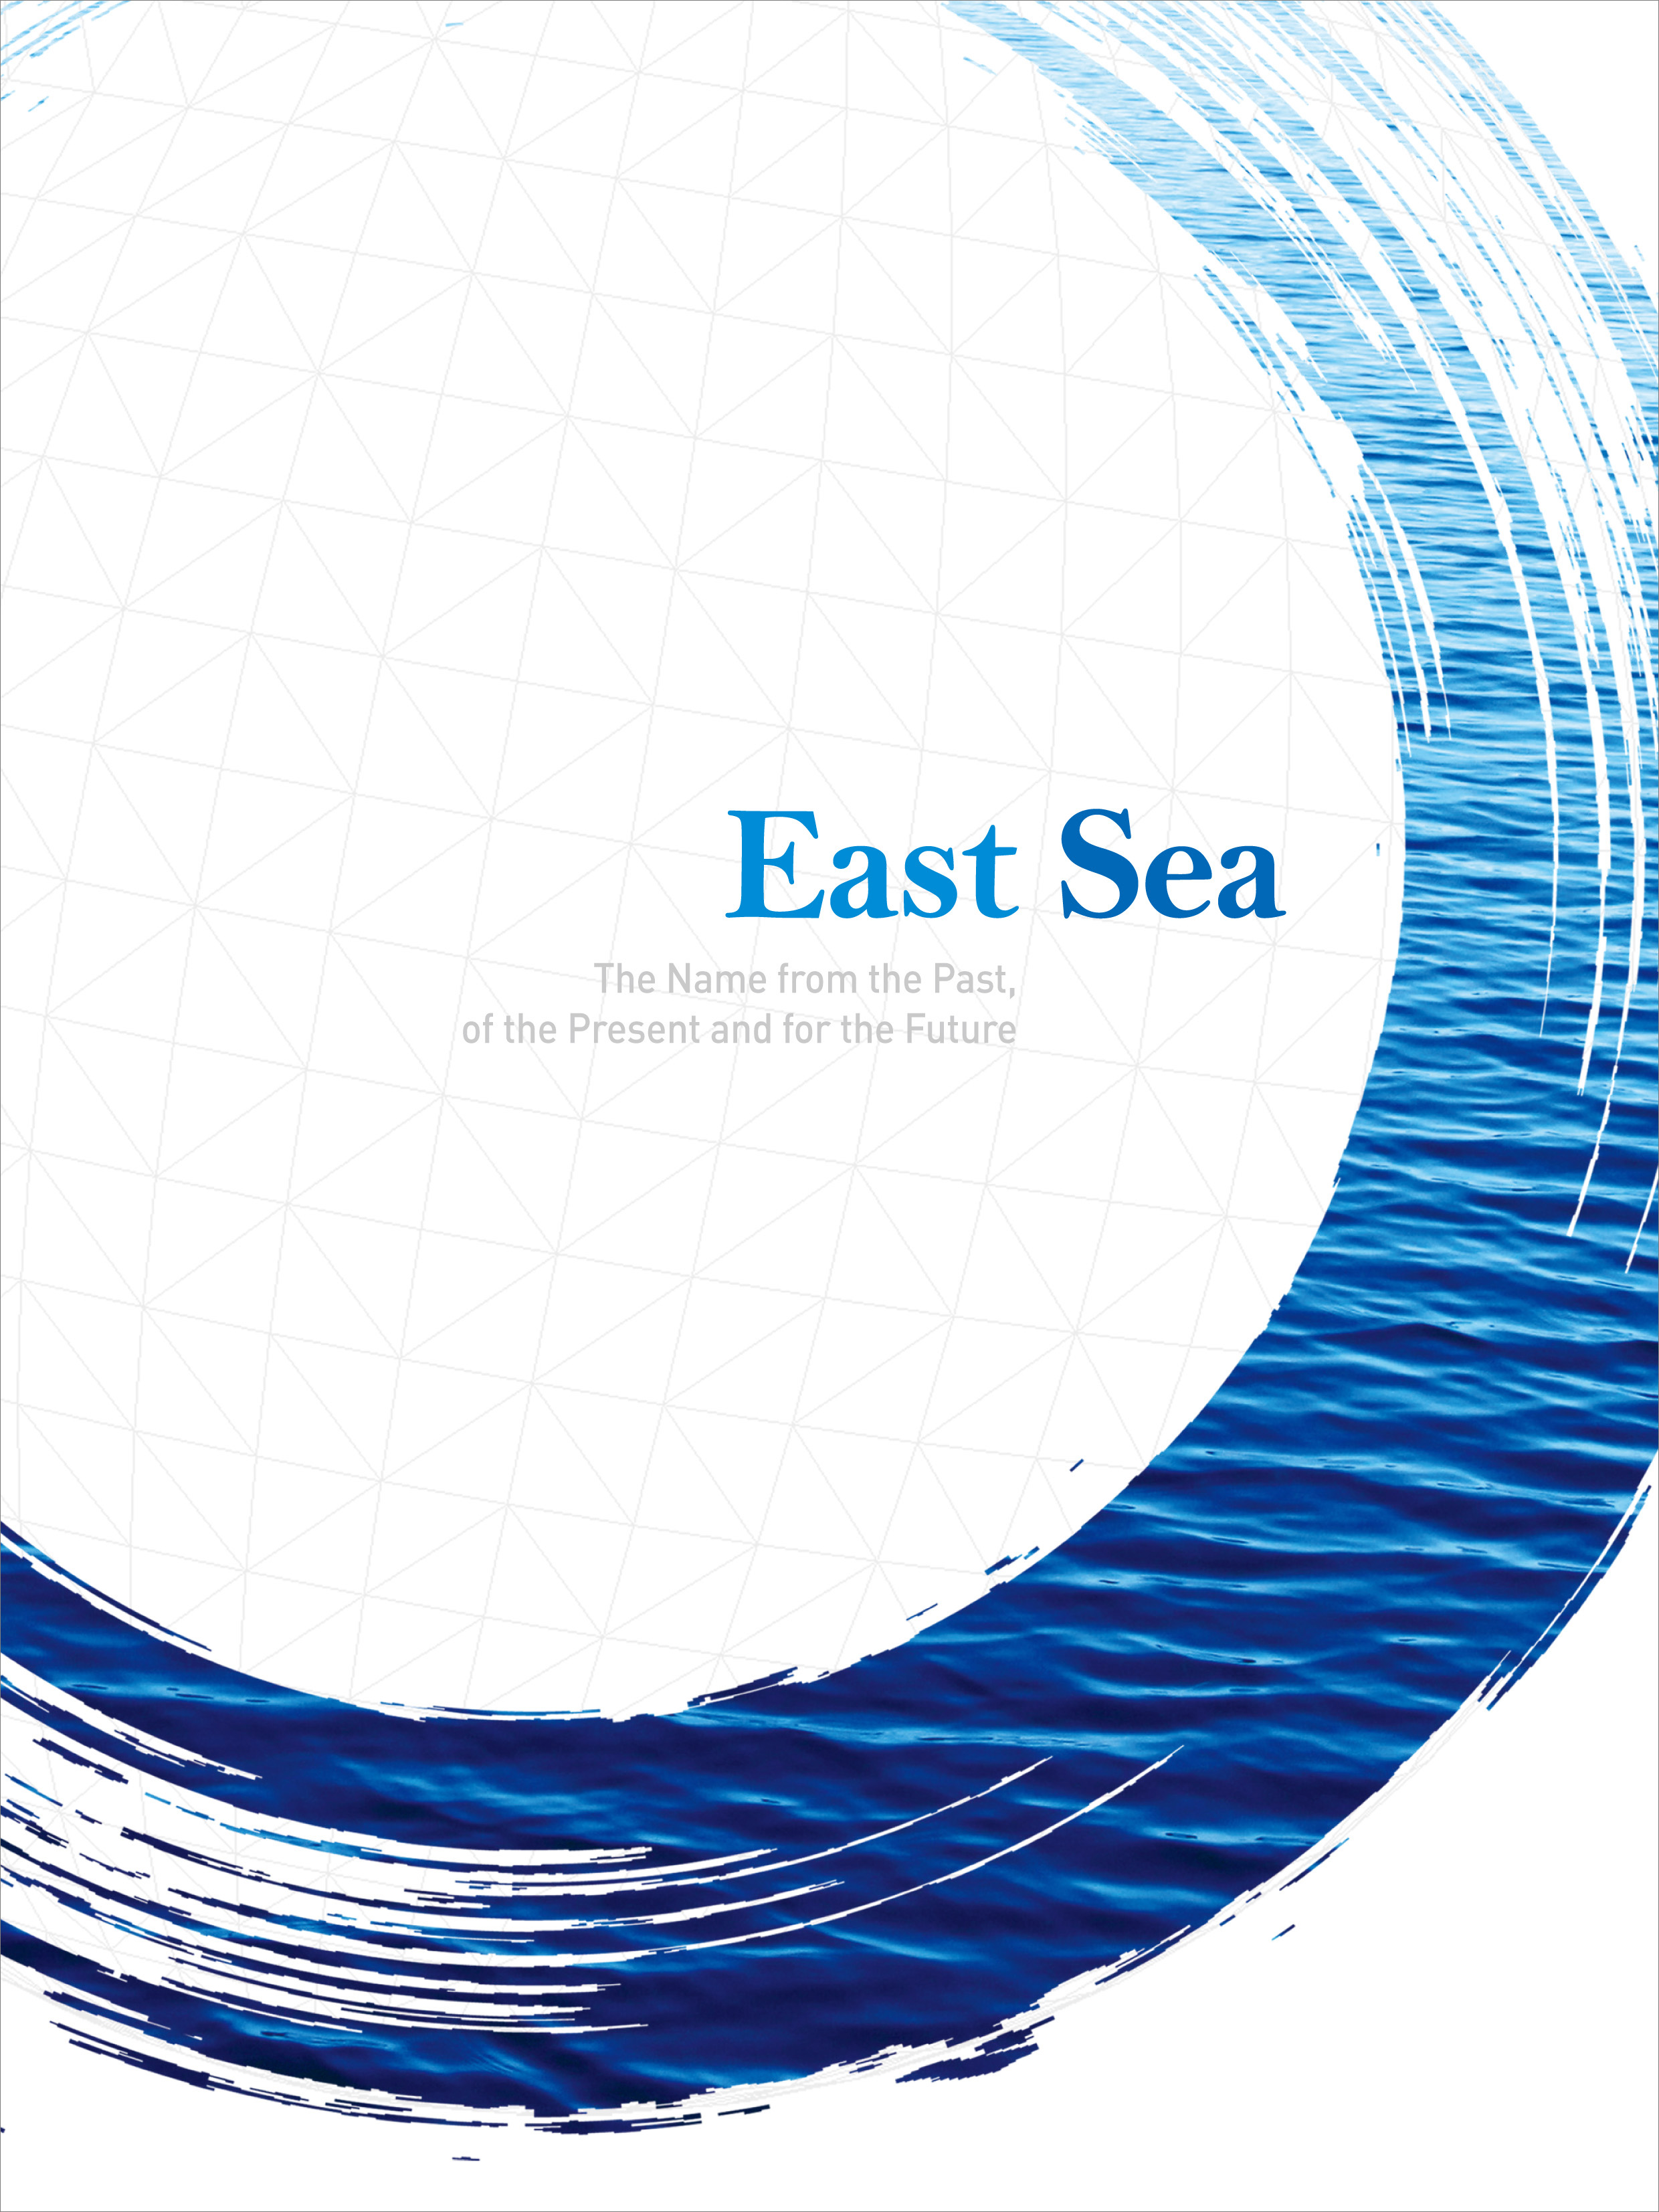 East Sea _ The Name from the Past, of the Present and for the Future